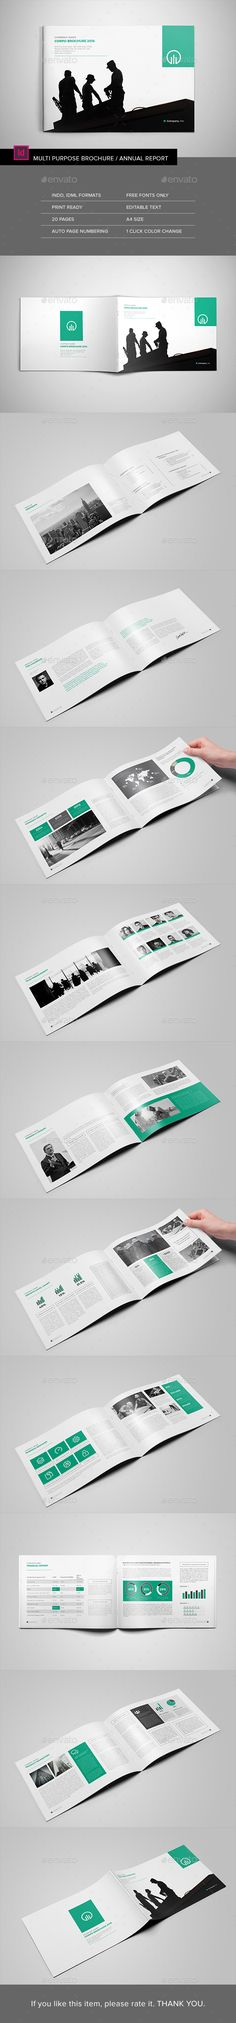 20 Pages A4 Size Landscape Multipurpose Brochure Template InDesign INDD. Download here: http://graphicriver.net/item/landscape-multipurpose-brochure/15613396?ref=ksioks